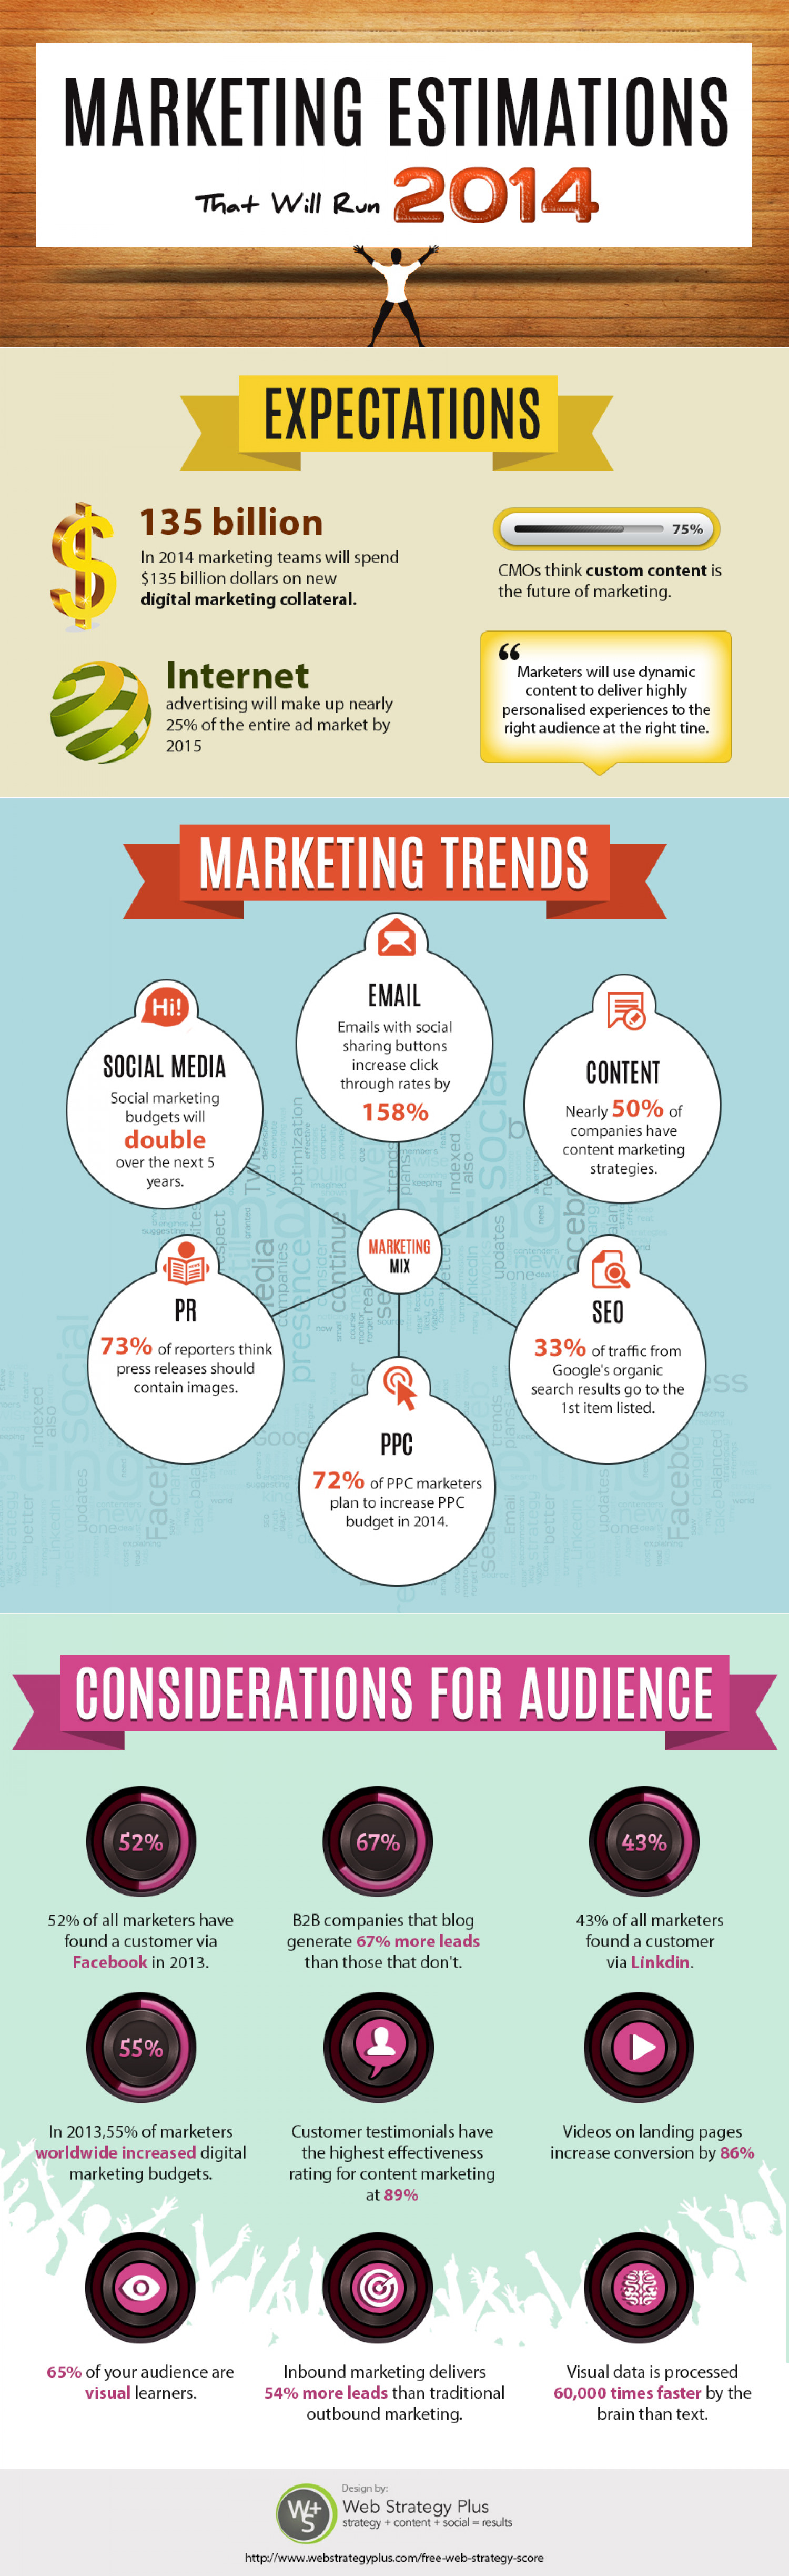 Marketing Estimations That Will Run 2014 Infographic